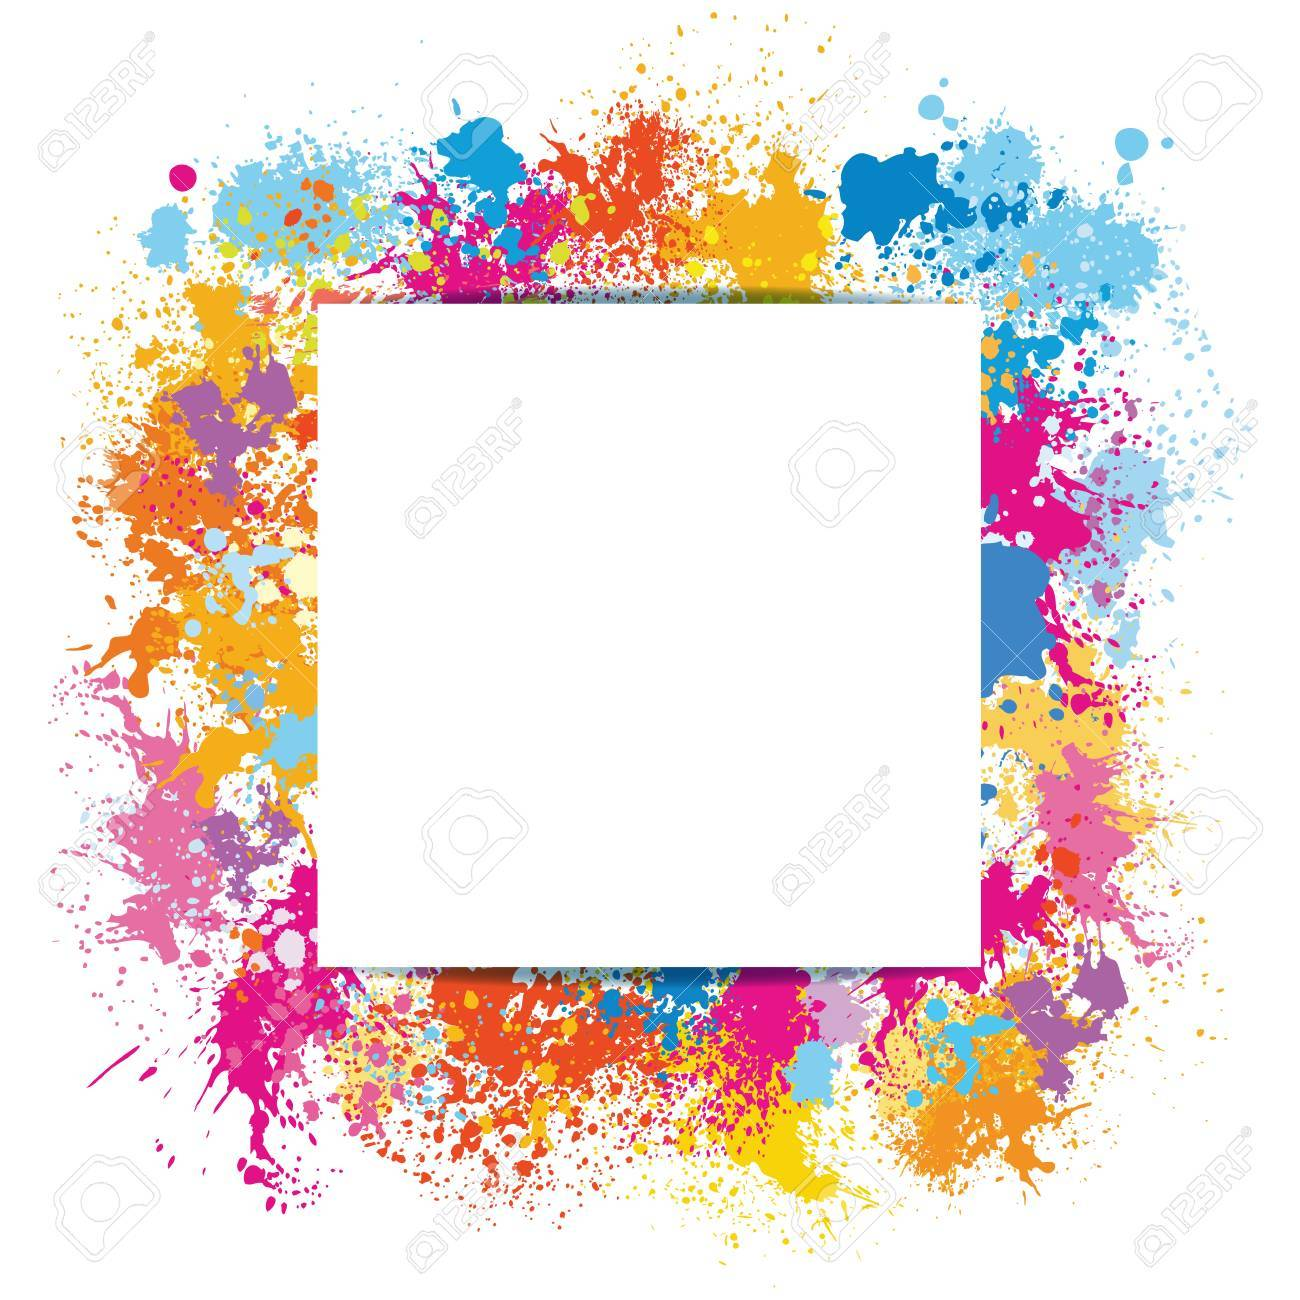 Frame template made of paint stains - 72446372